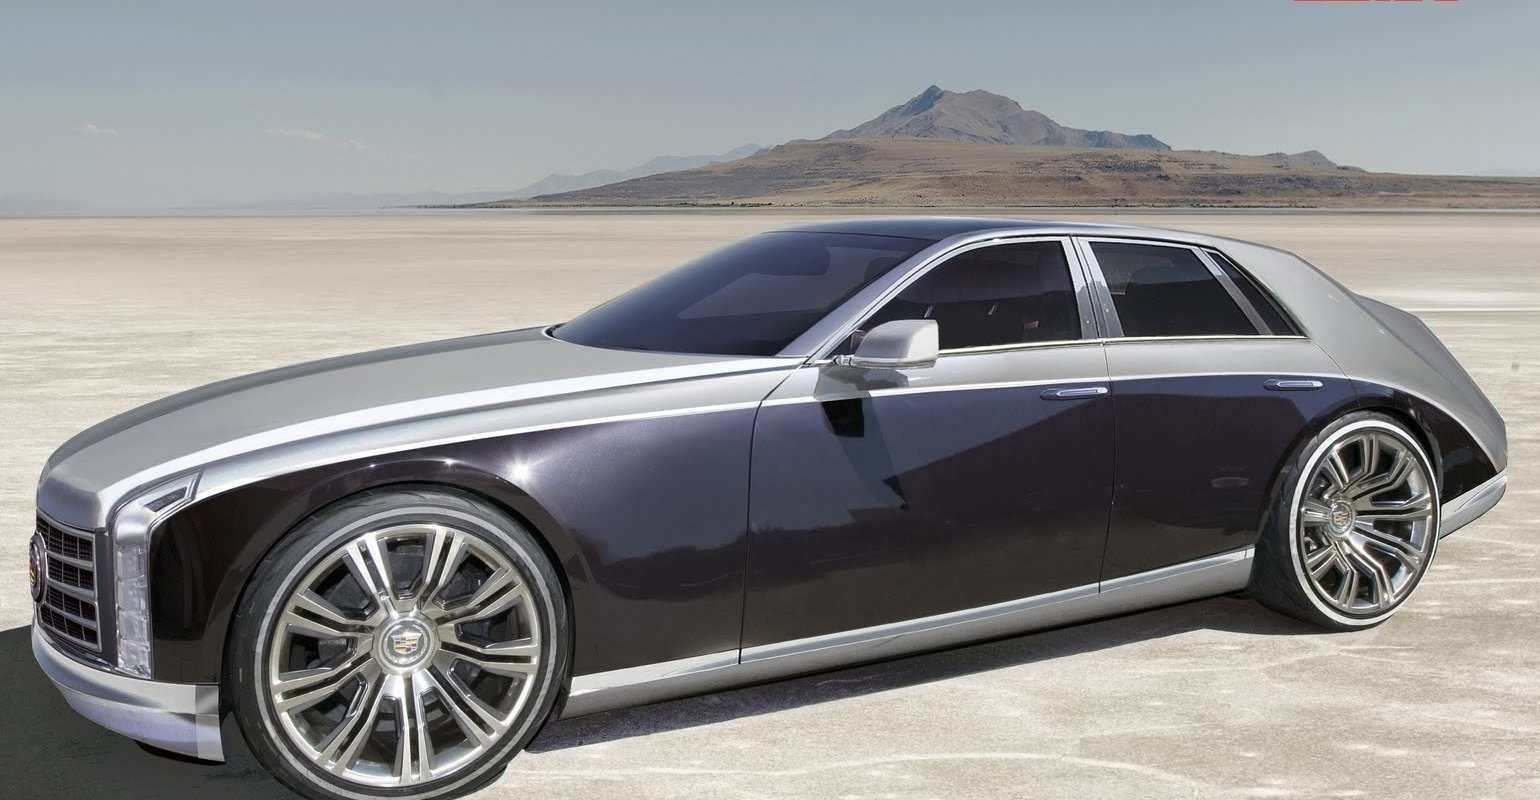 46 The 2020 Cadillac Deville Prices with 2020 Cadillac Deville